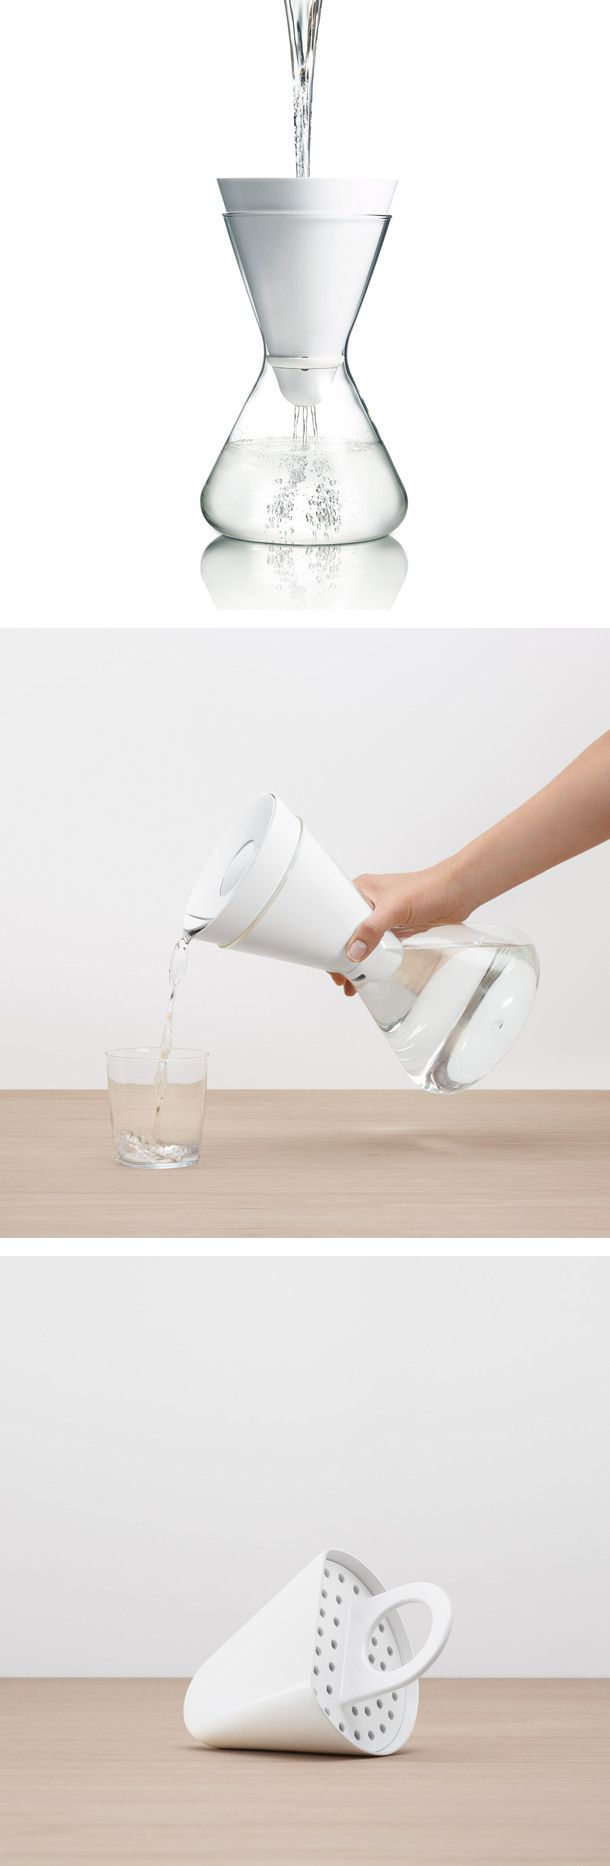 Soma water filter carafe... one of the most elegant product designs in its class #productdesign #industrialdesign